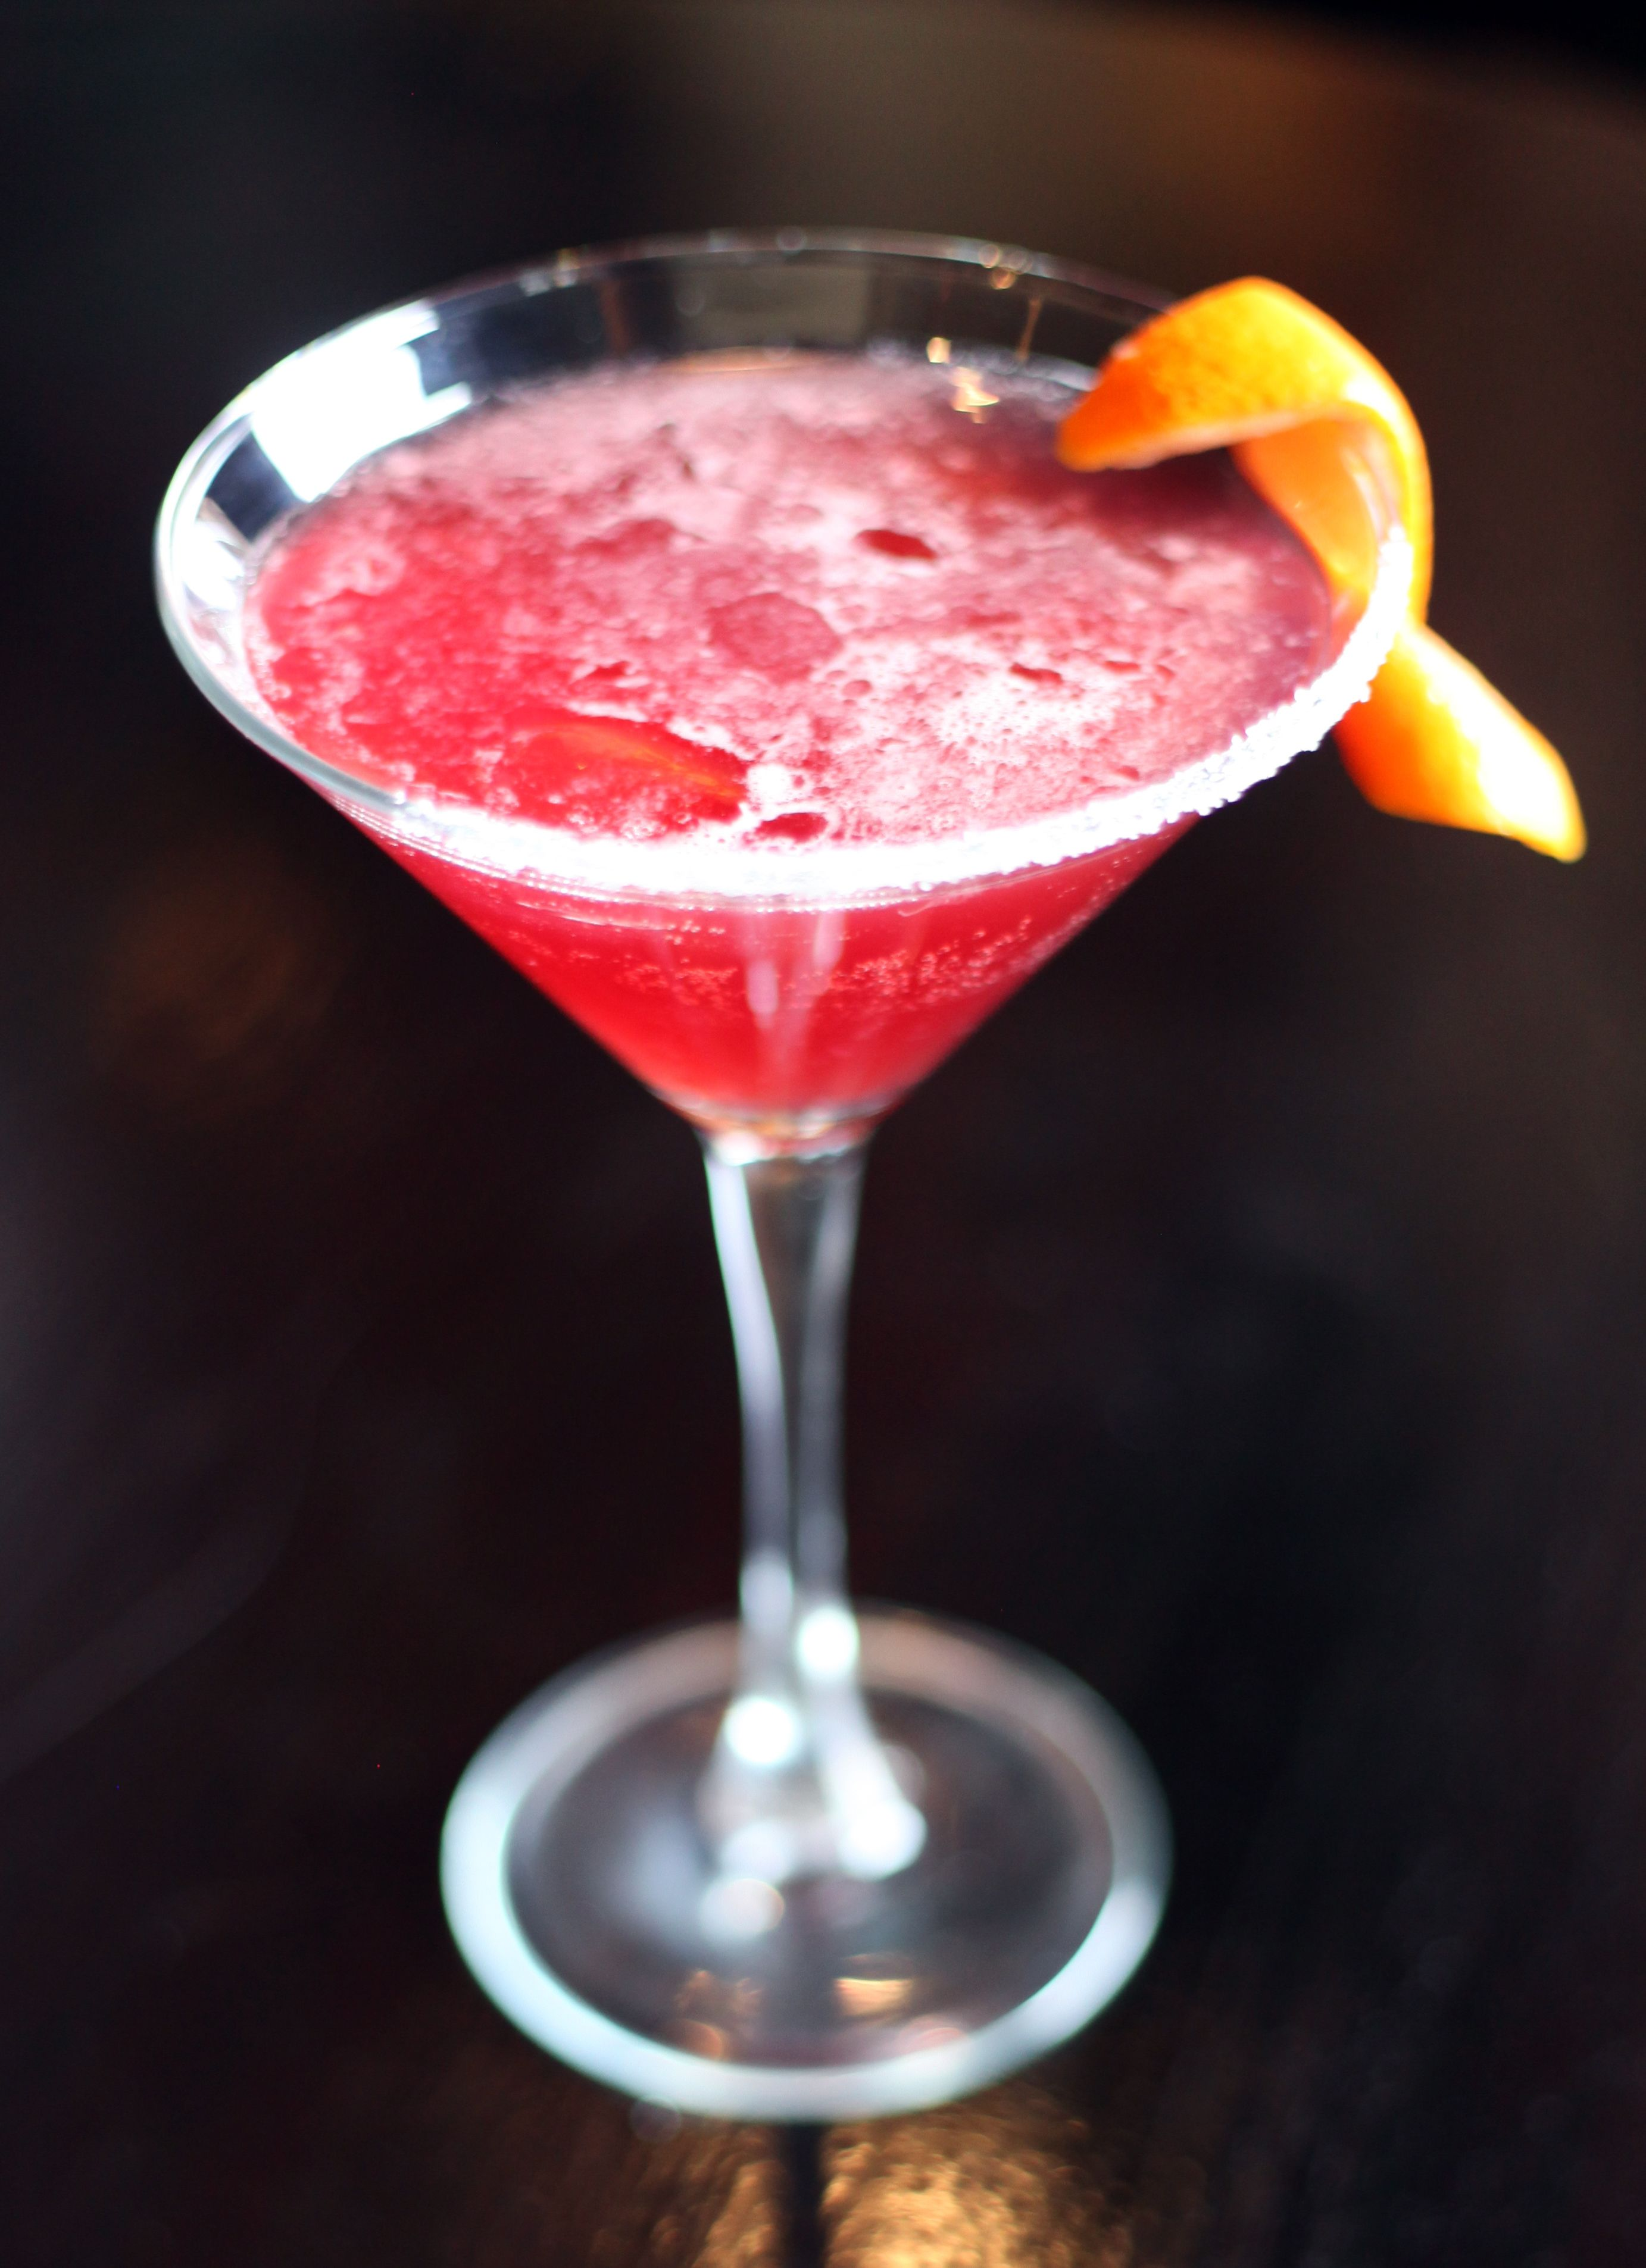 Cantina Laredo offers a special menu Feb. 12-14 and features its new Aphrodite margarita made with 1800 reposado tequila and Solerno blood orange liqueur,...